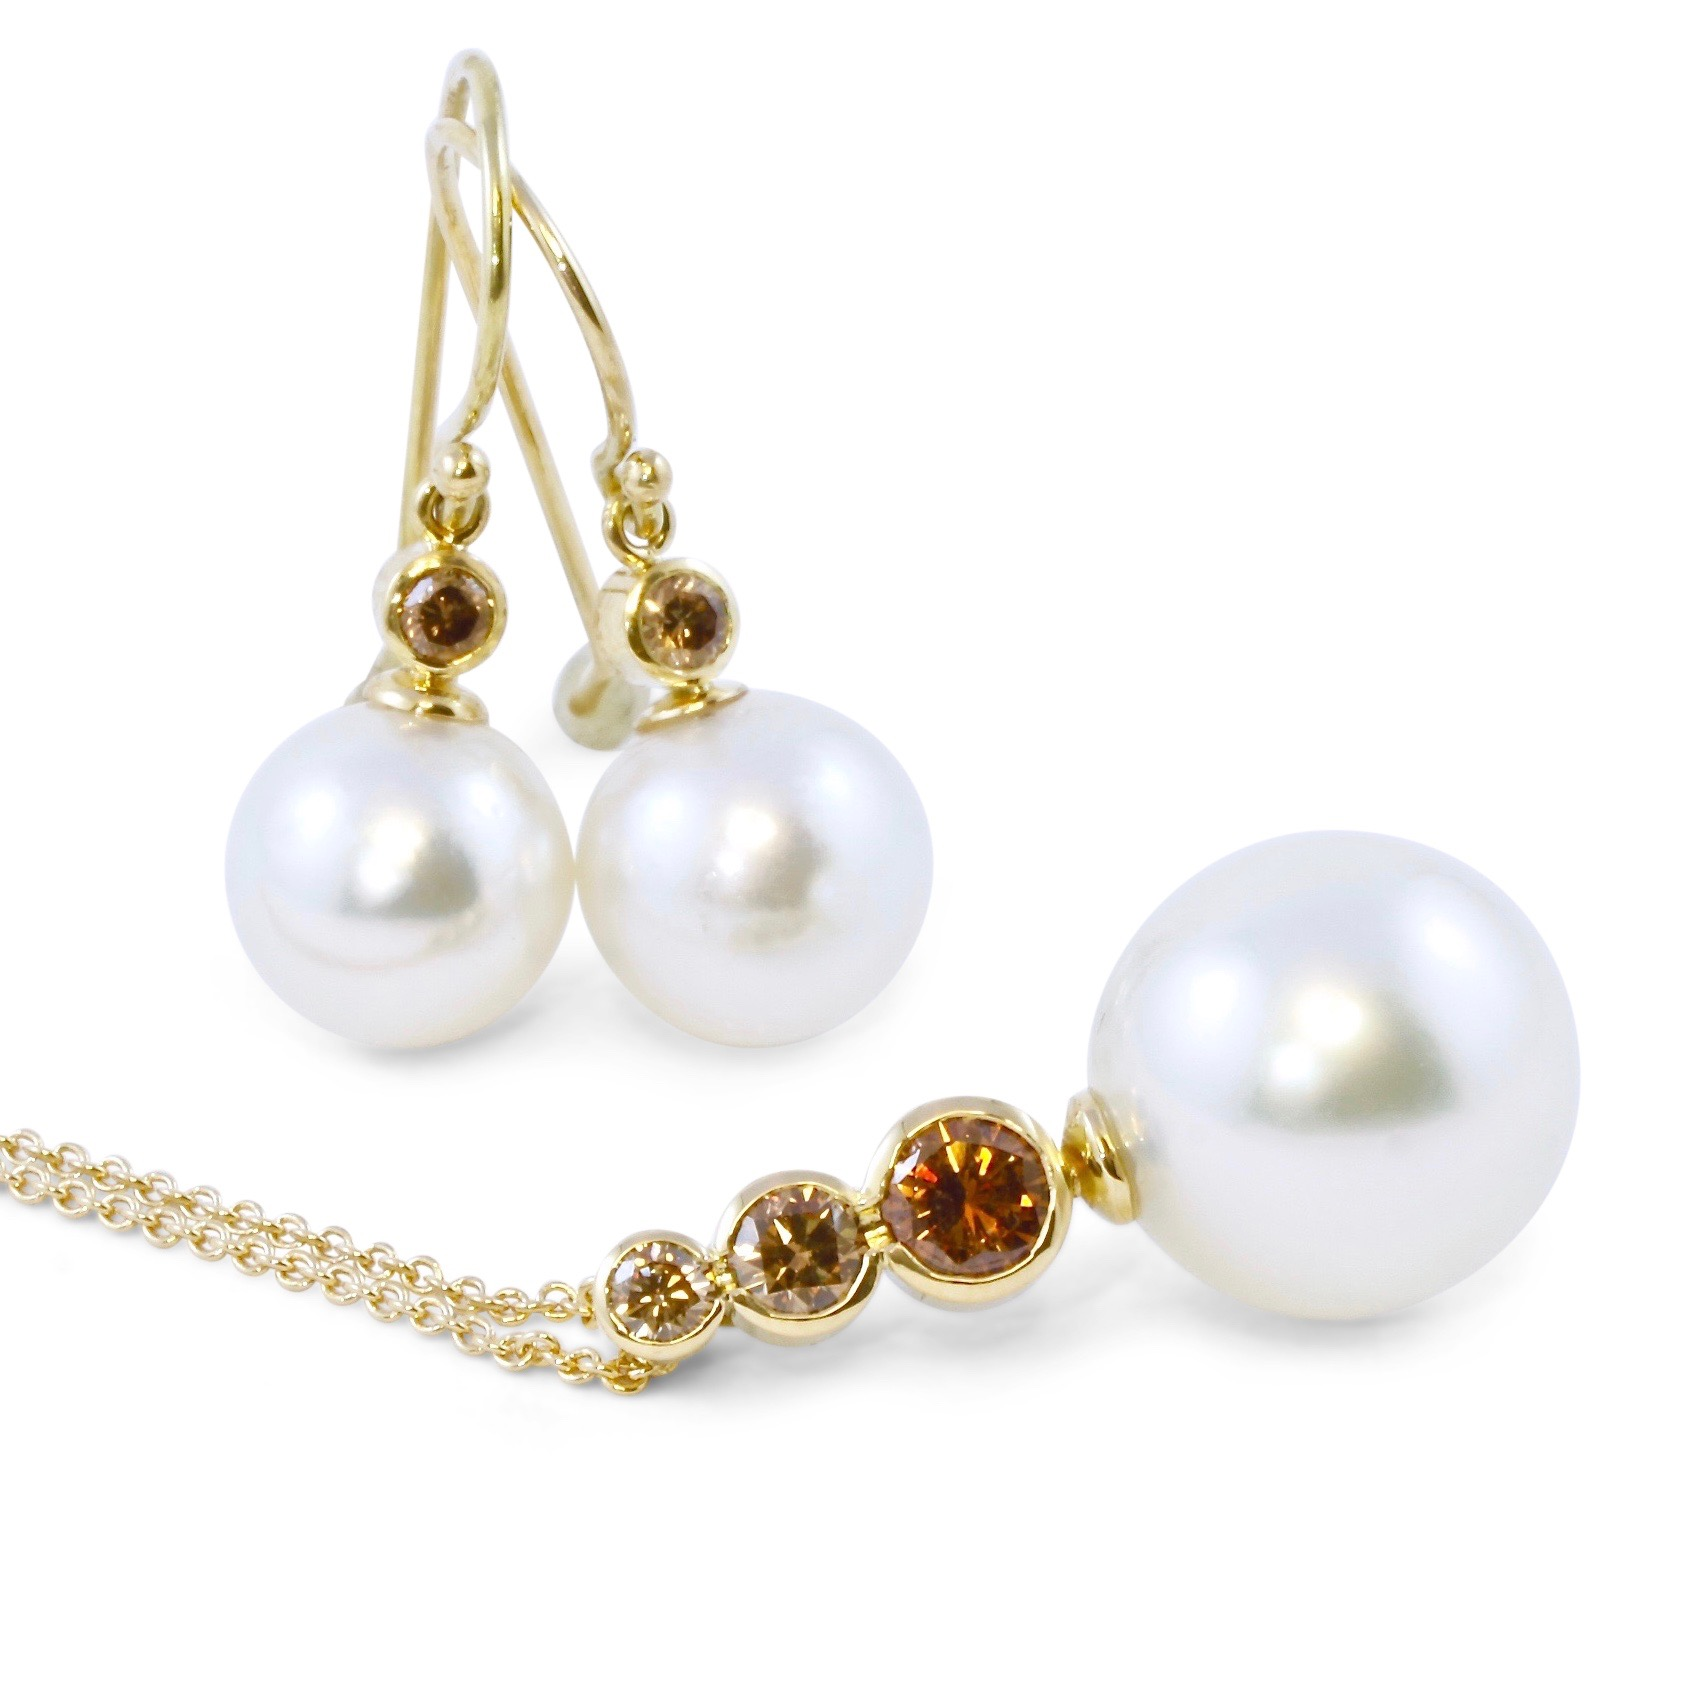 South sea pearl and champagne diamond earrings and pendant